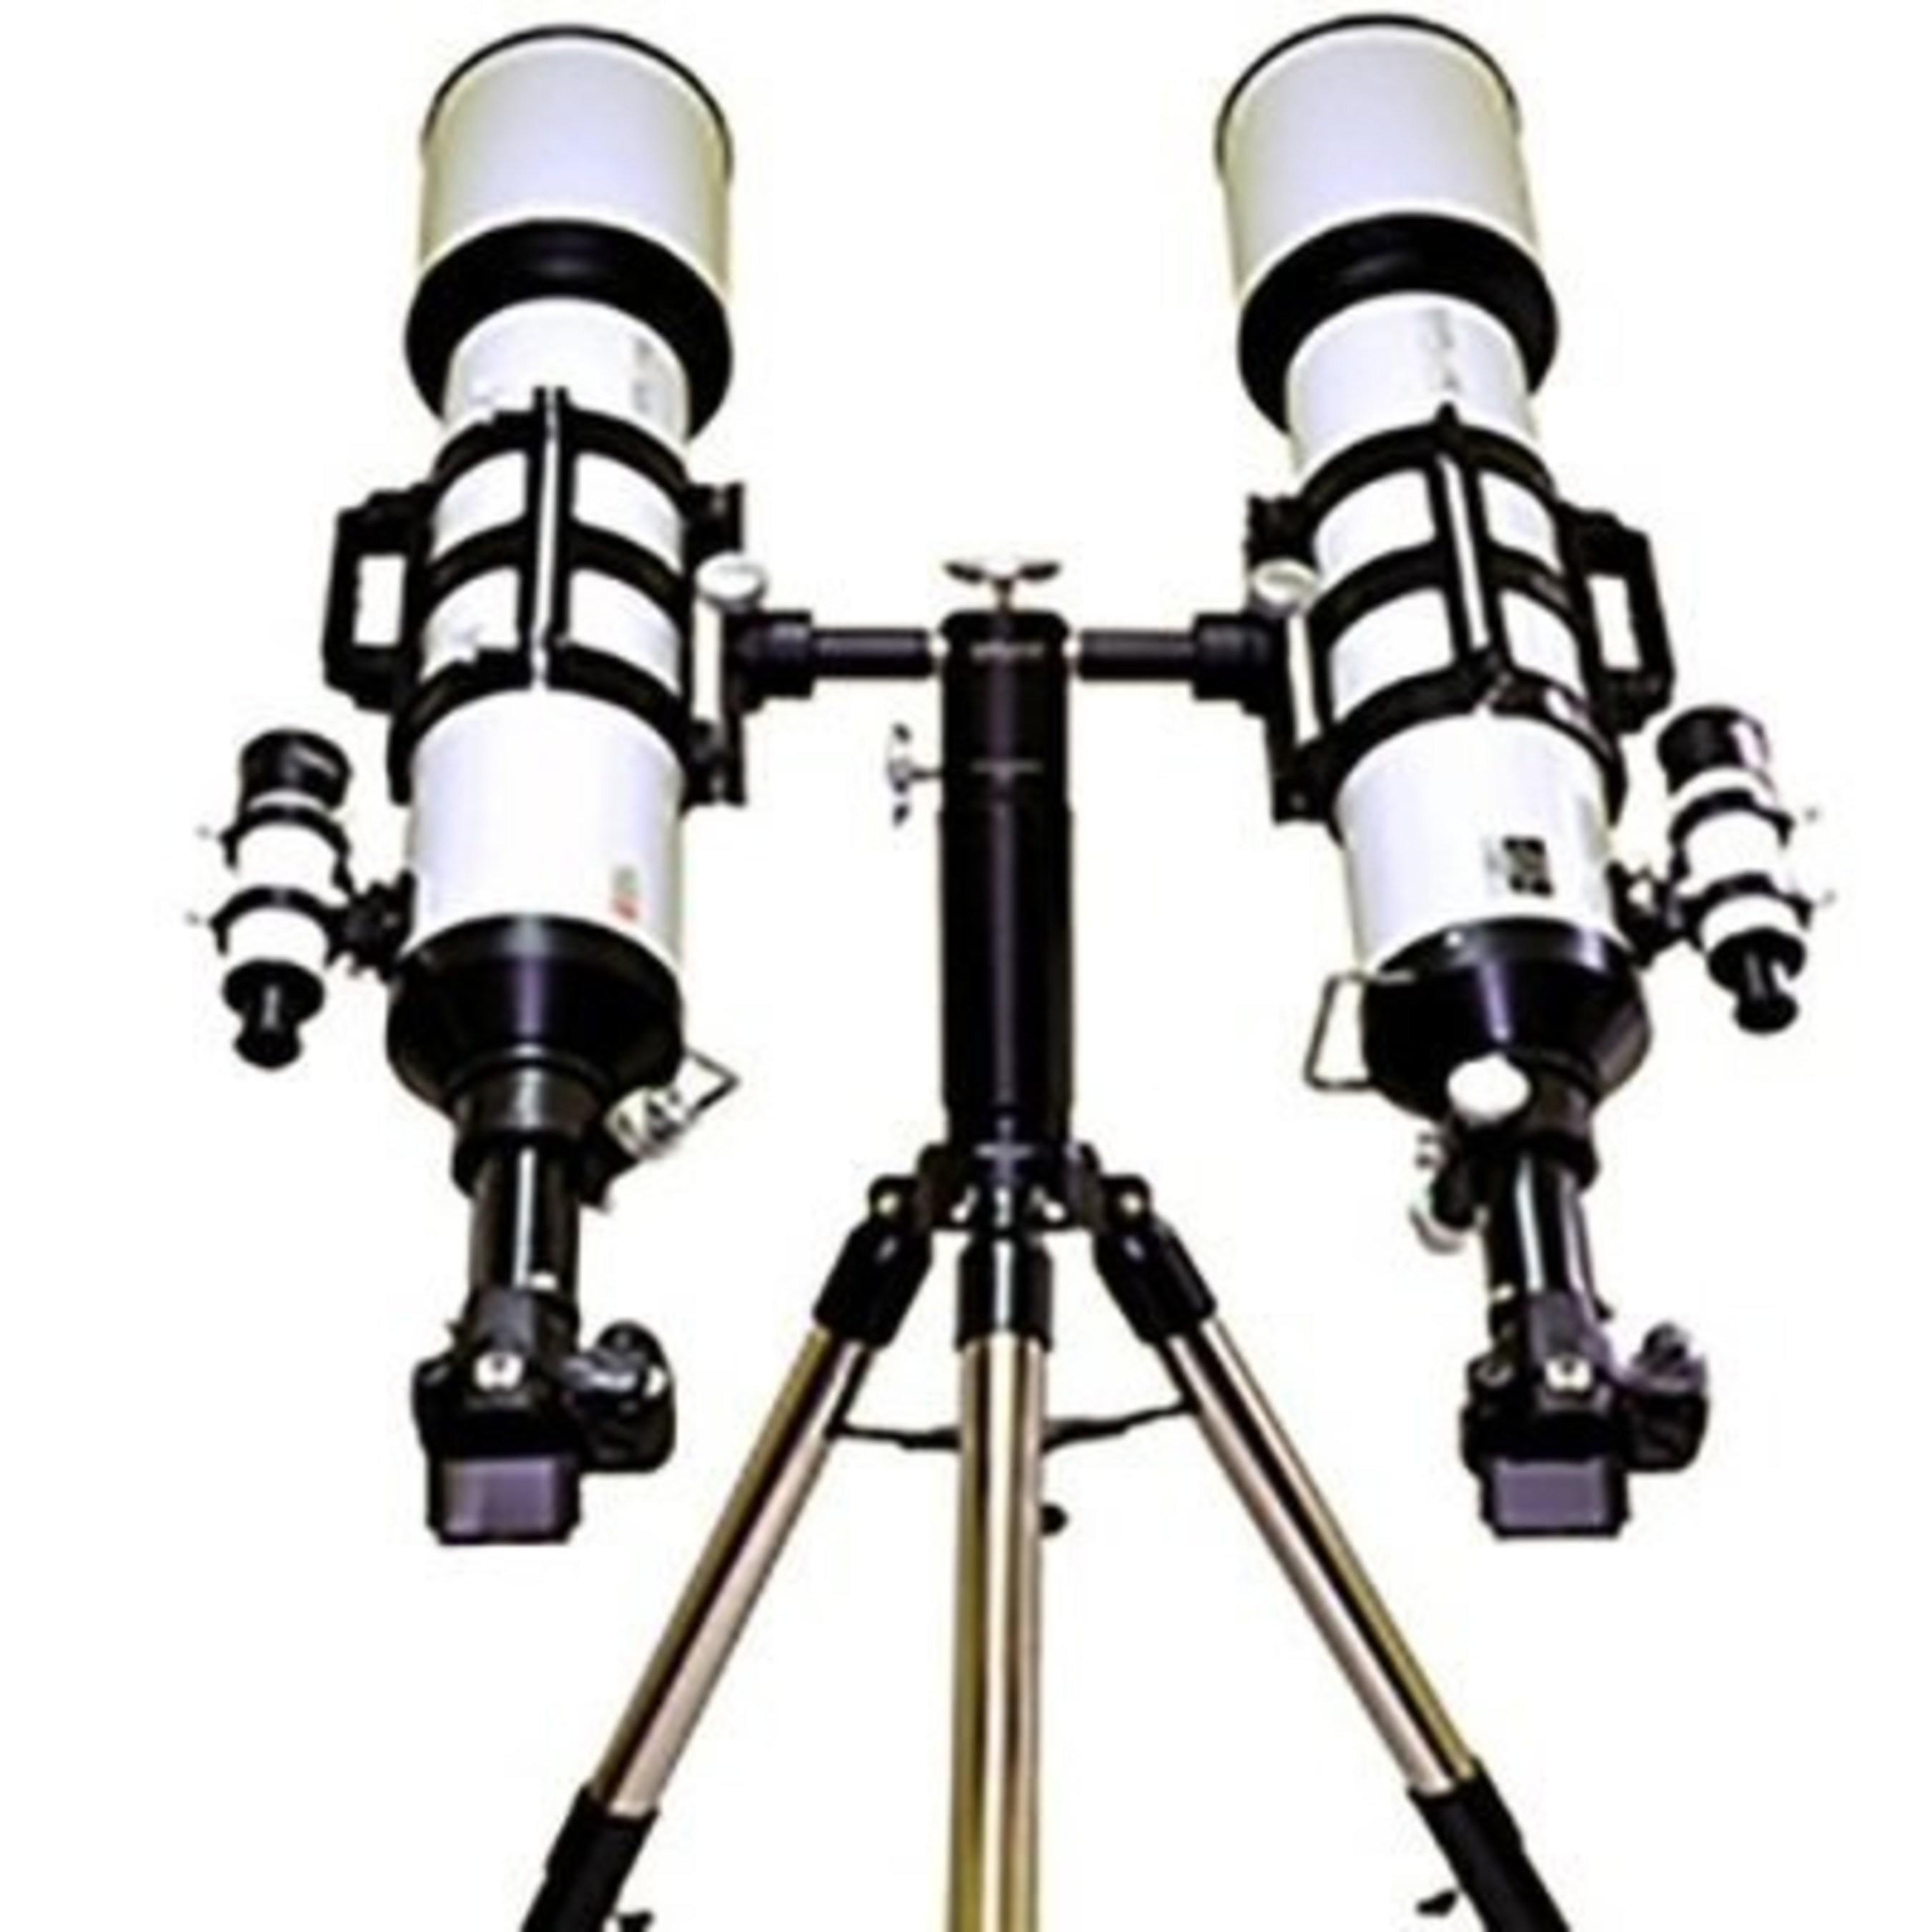 Thunder Energies Corporation Announces Manufacturing Agreement with United Optics for the Production of Telescopes